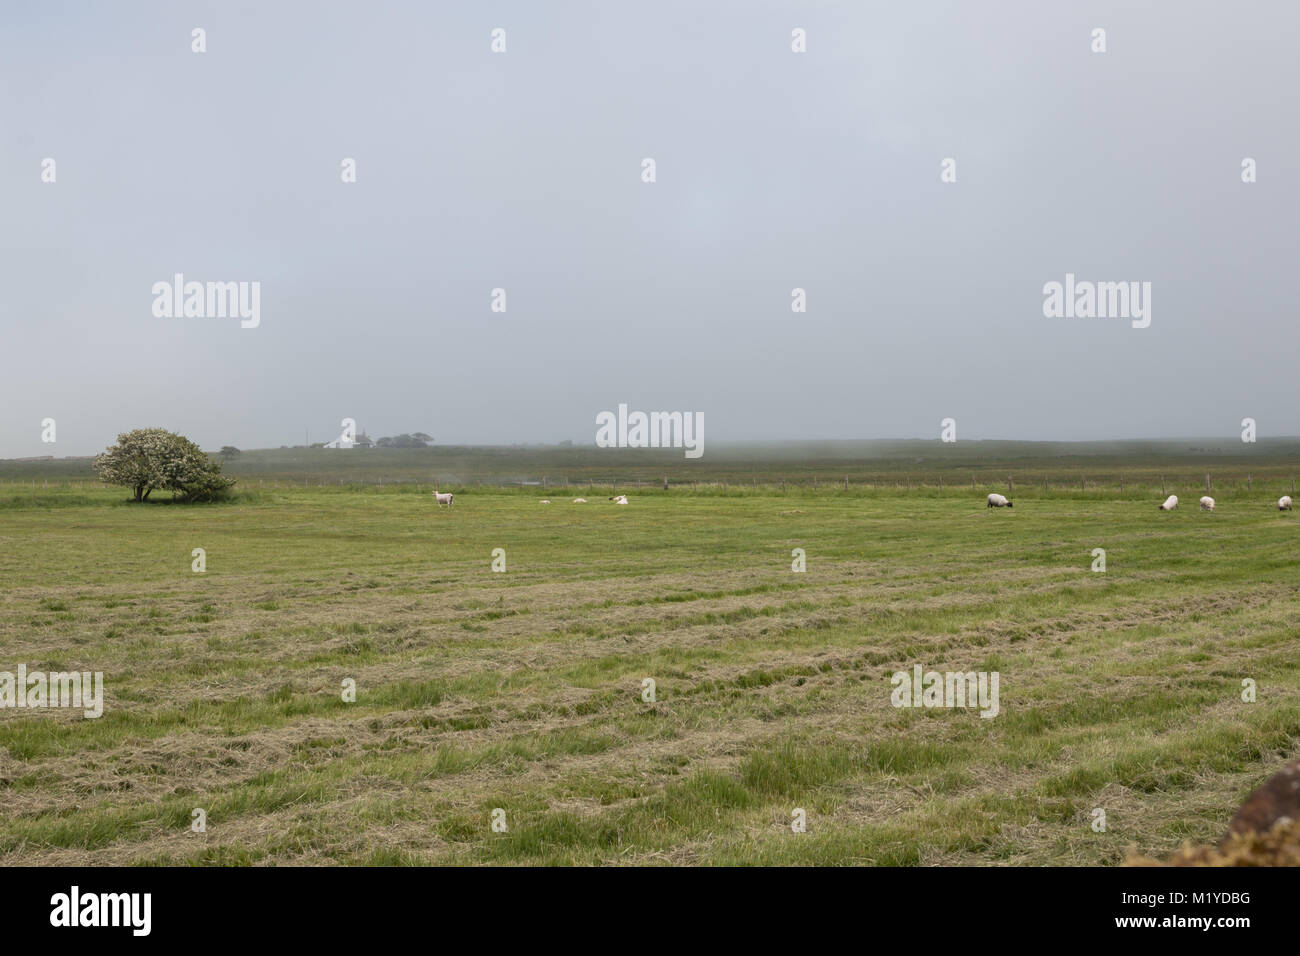 View across a green field with sheep of mist on the horizon - Stock Image